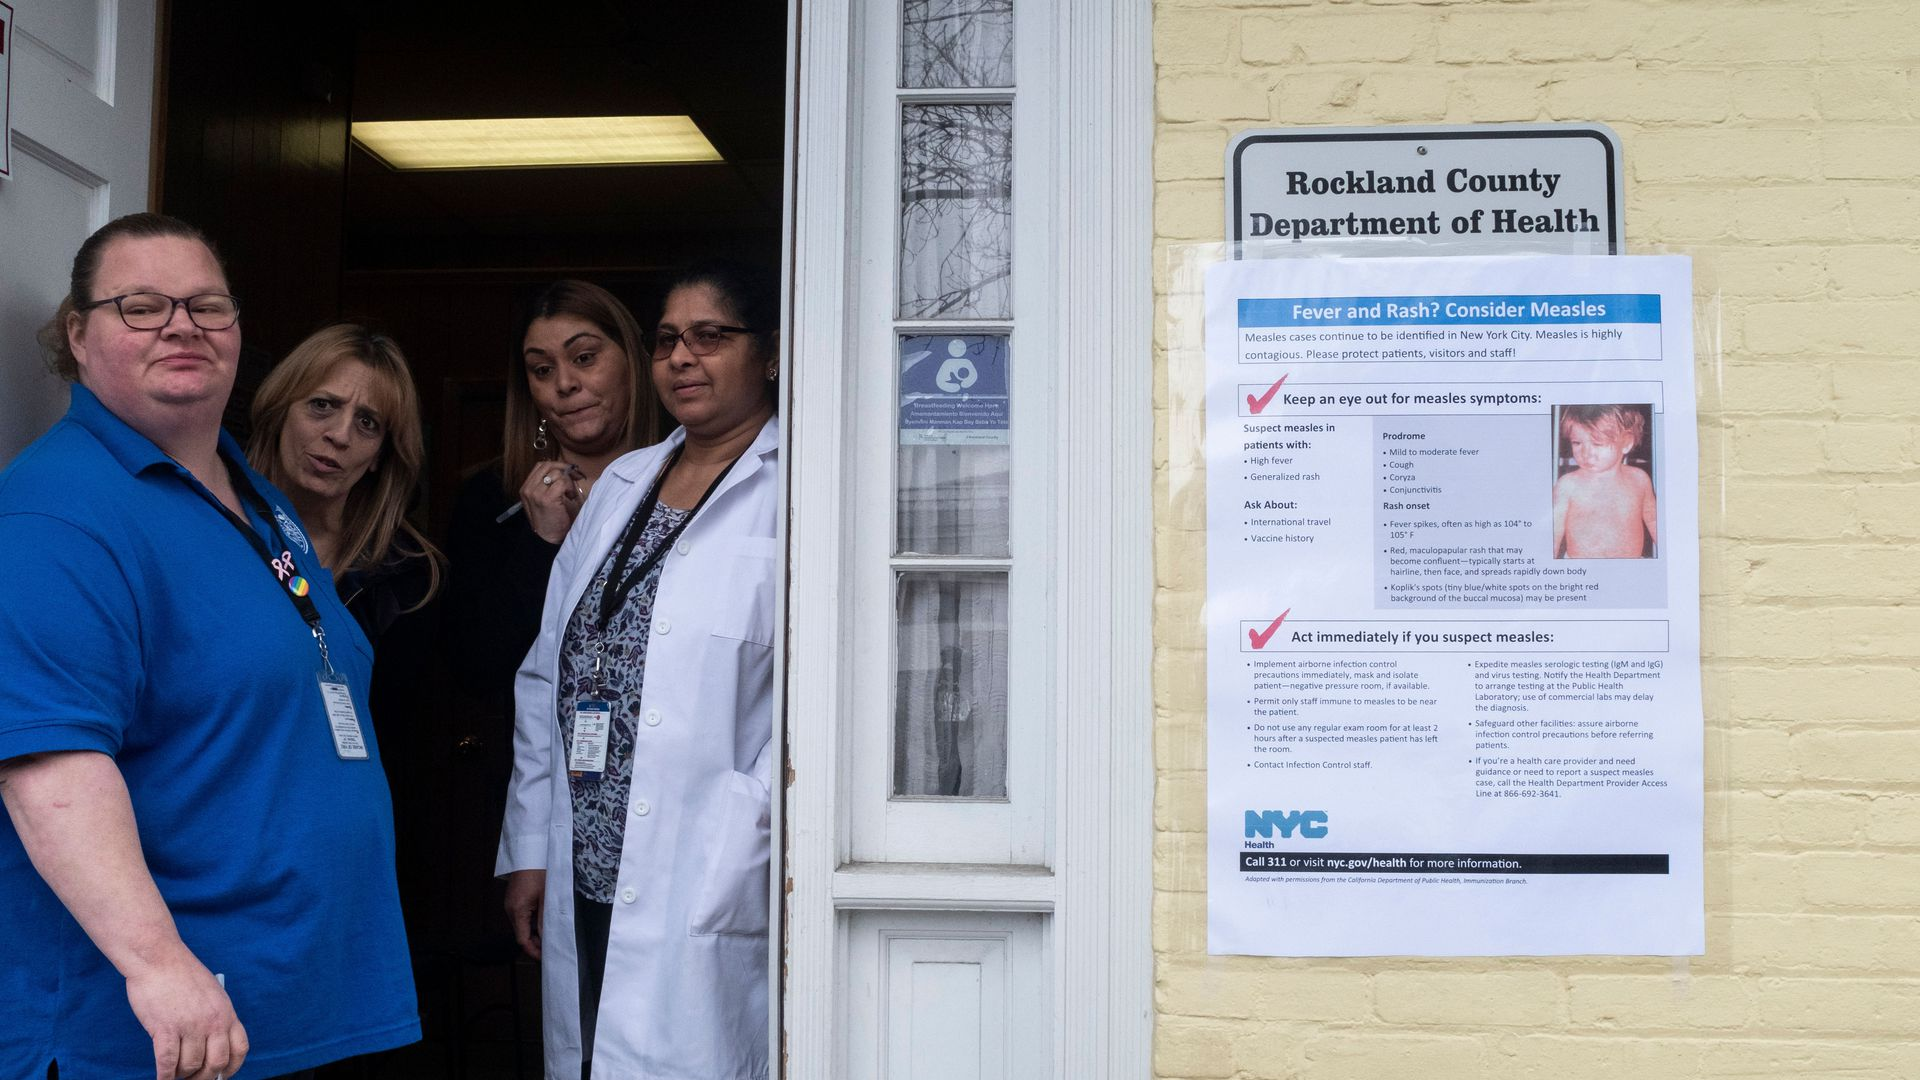 Photo of nurses at a clinic in Rockland County, NY, peering outside the door next to a measles information sign